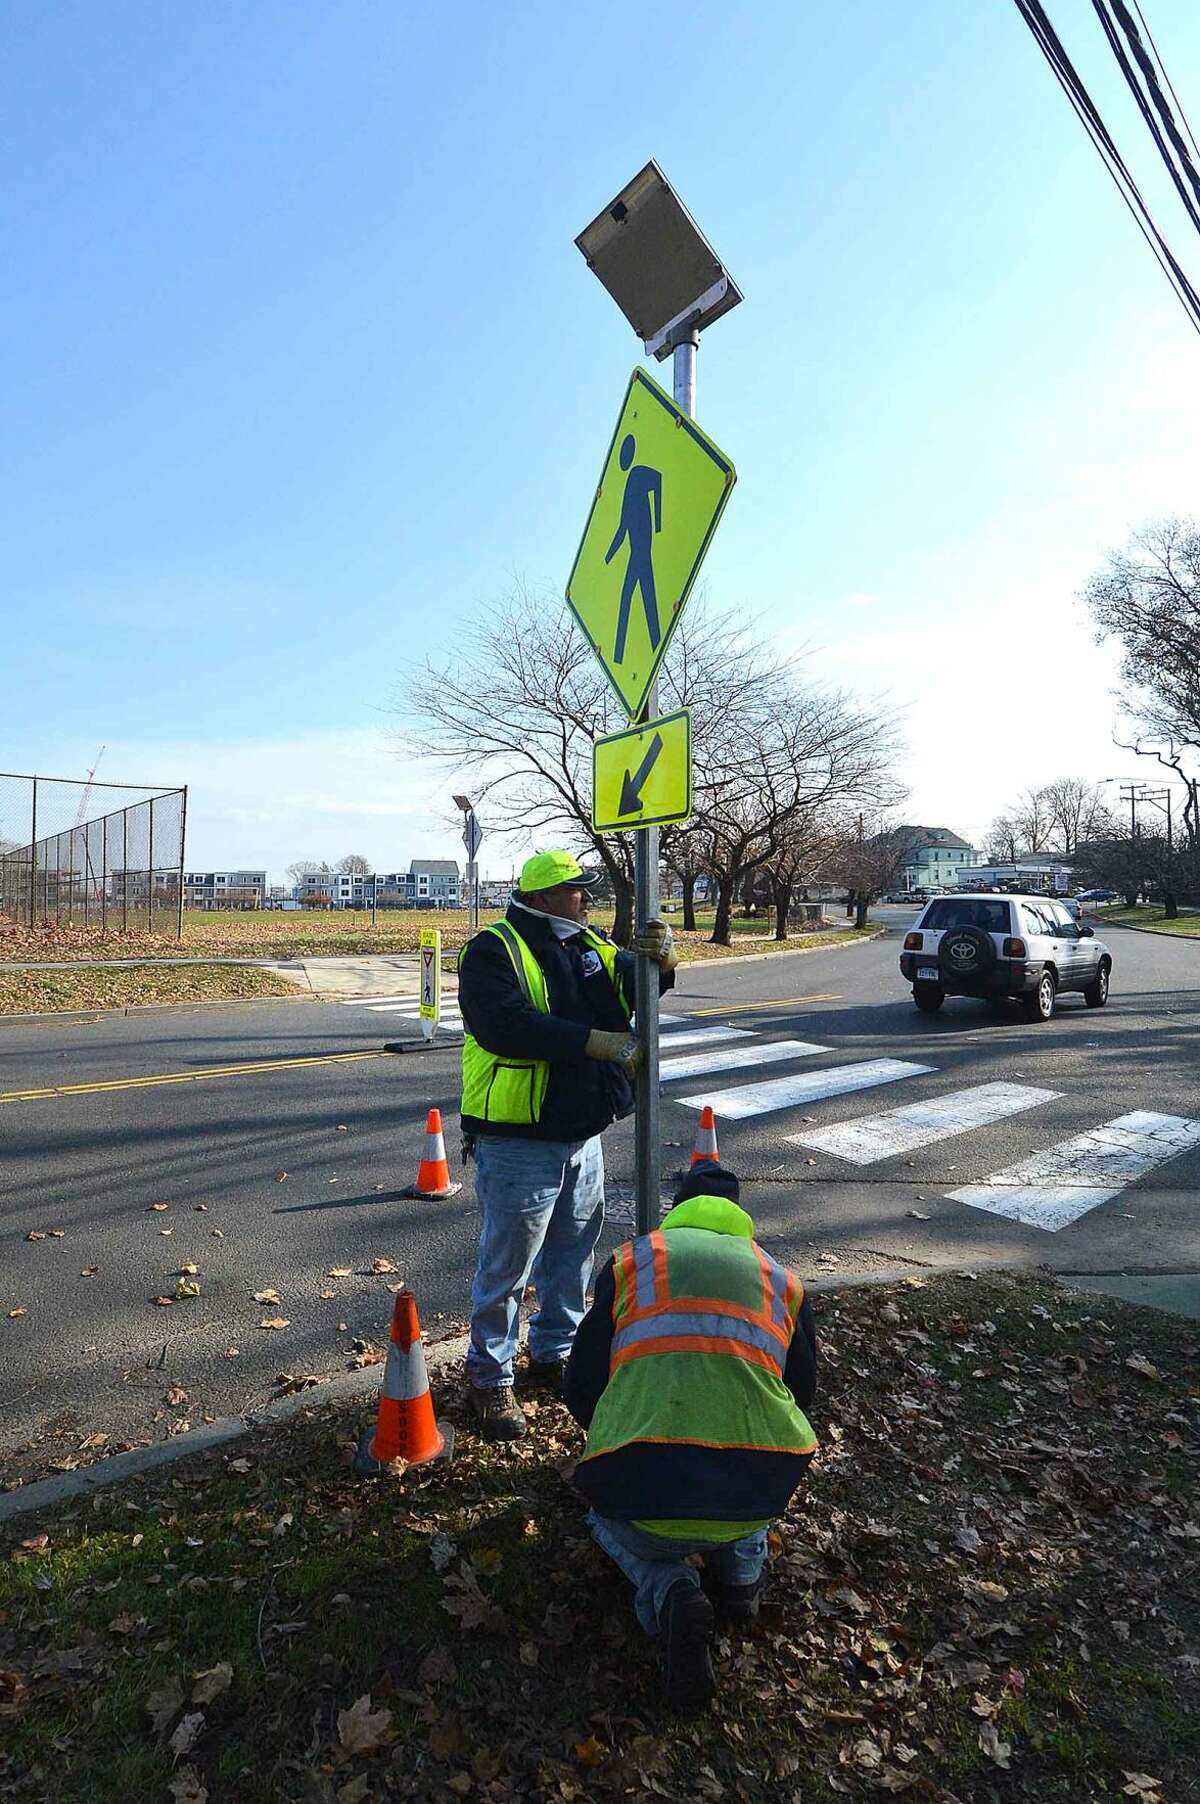 Solar powered pedestrian crossing signs are installed at Stillwater Avenue and Progress Drive, part of Stamford's Street Smart program.